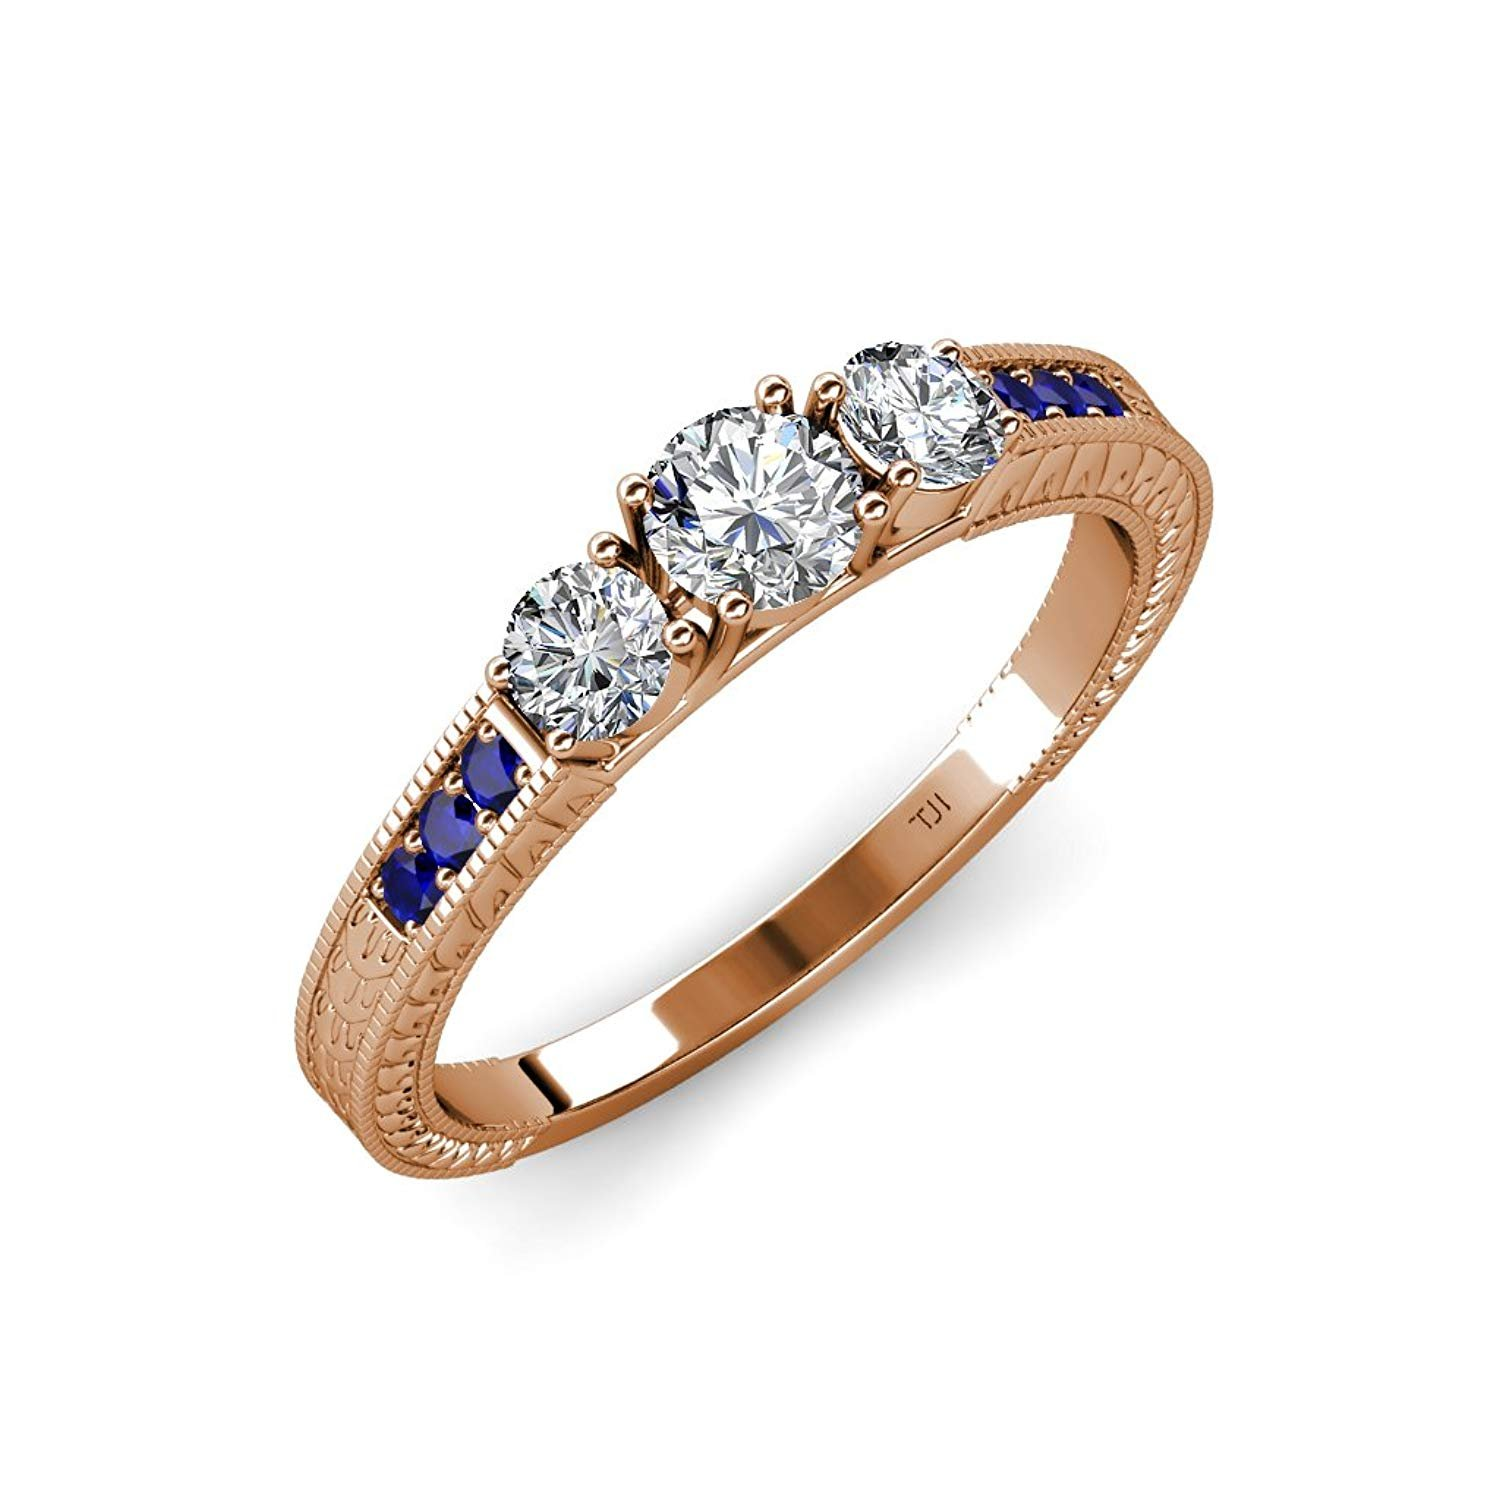 Diamond Milgrain Work Three Stone Ring with Blue Sapphire on Side Bar 0.85 ct tw 14K Rose Gold.size 8.0 by TriJewels